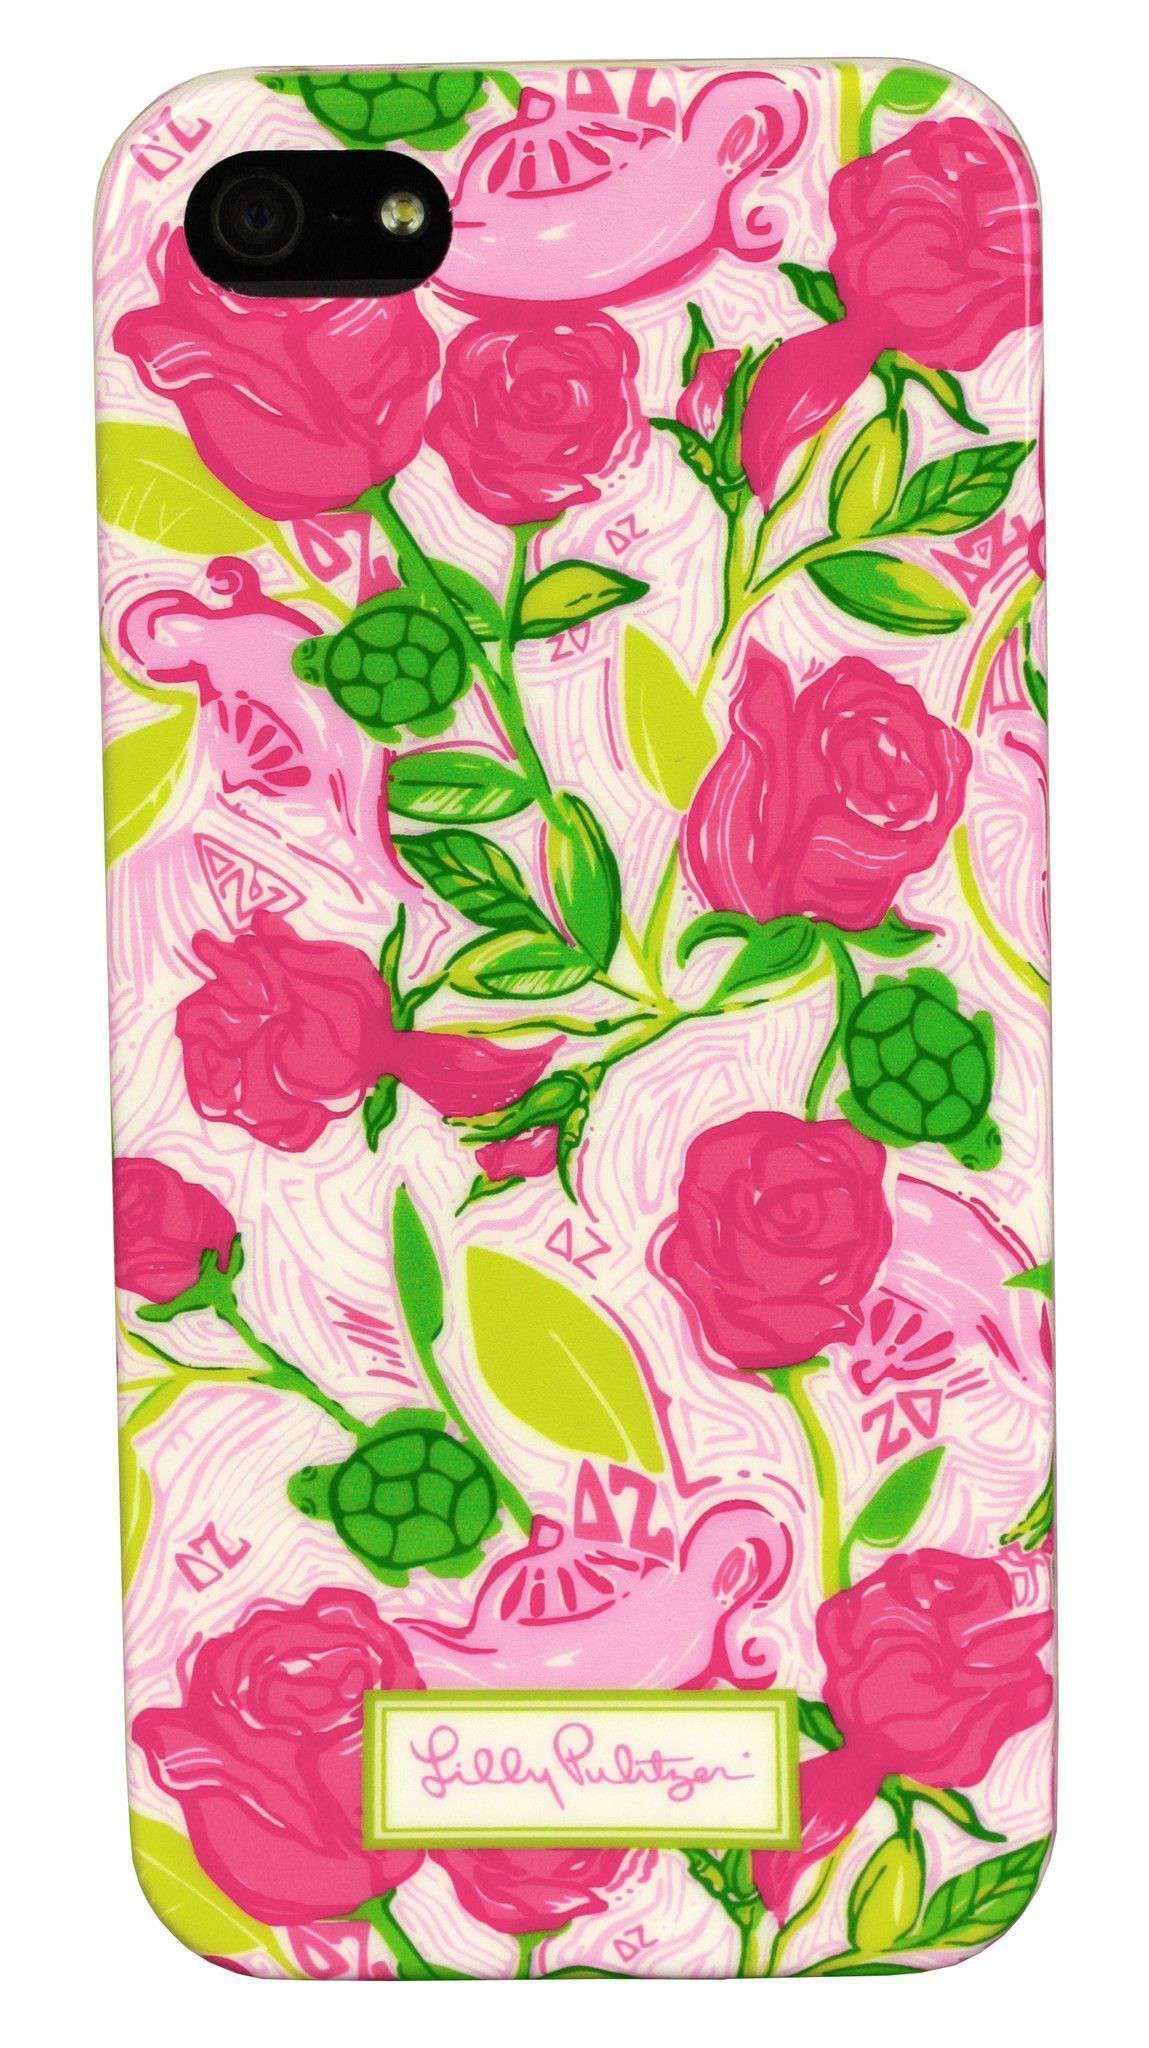 8be9a3d84316c7 Lilly Pulitzer Delta Zeta iPhone 5/5s Cover – Country Club Prep